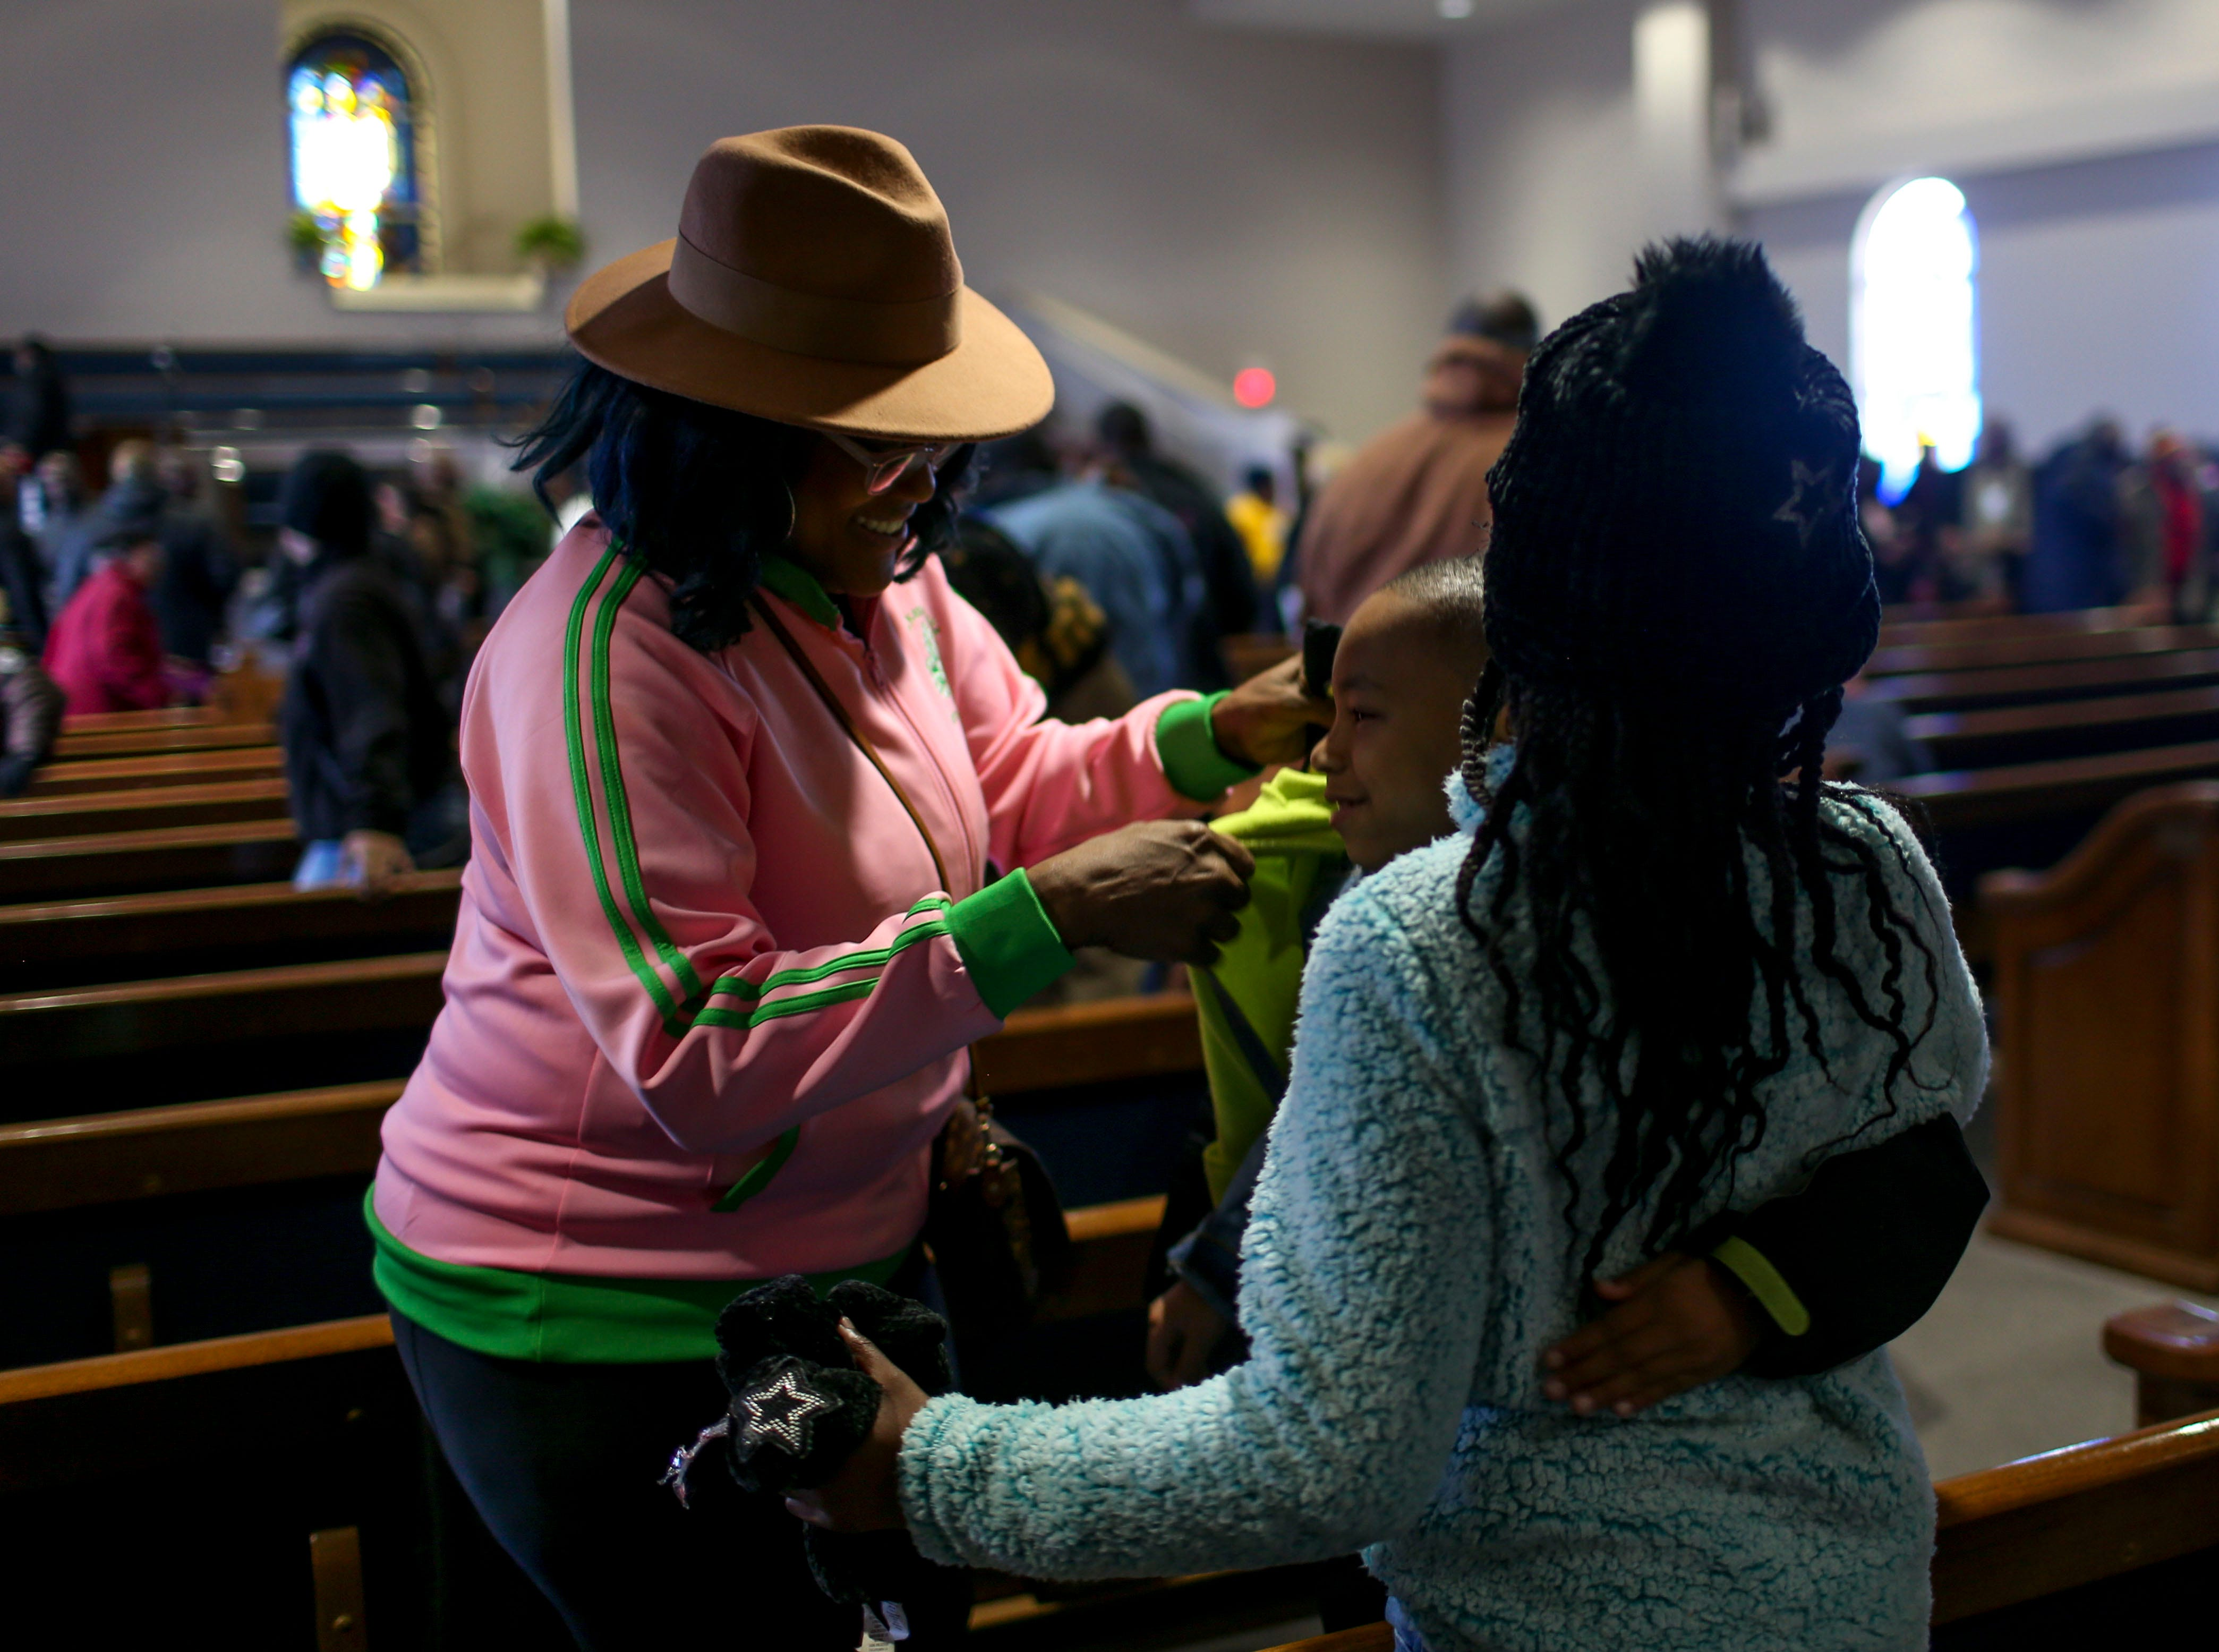 Teri Wood, left, tries to help put a coat on Corinthian Wood, 6, center, who's busy hugging Jamiya Armstrong, 11, right, during a service held for Martin Luther King Jr. Day at Mt. Zion Baptist Church in Jackson, Tenn., on Monday, Jan. 21, 2019.